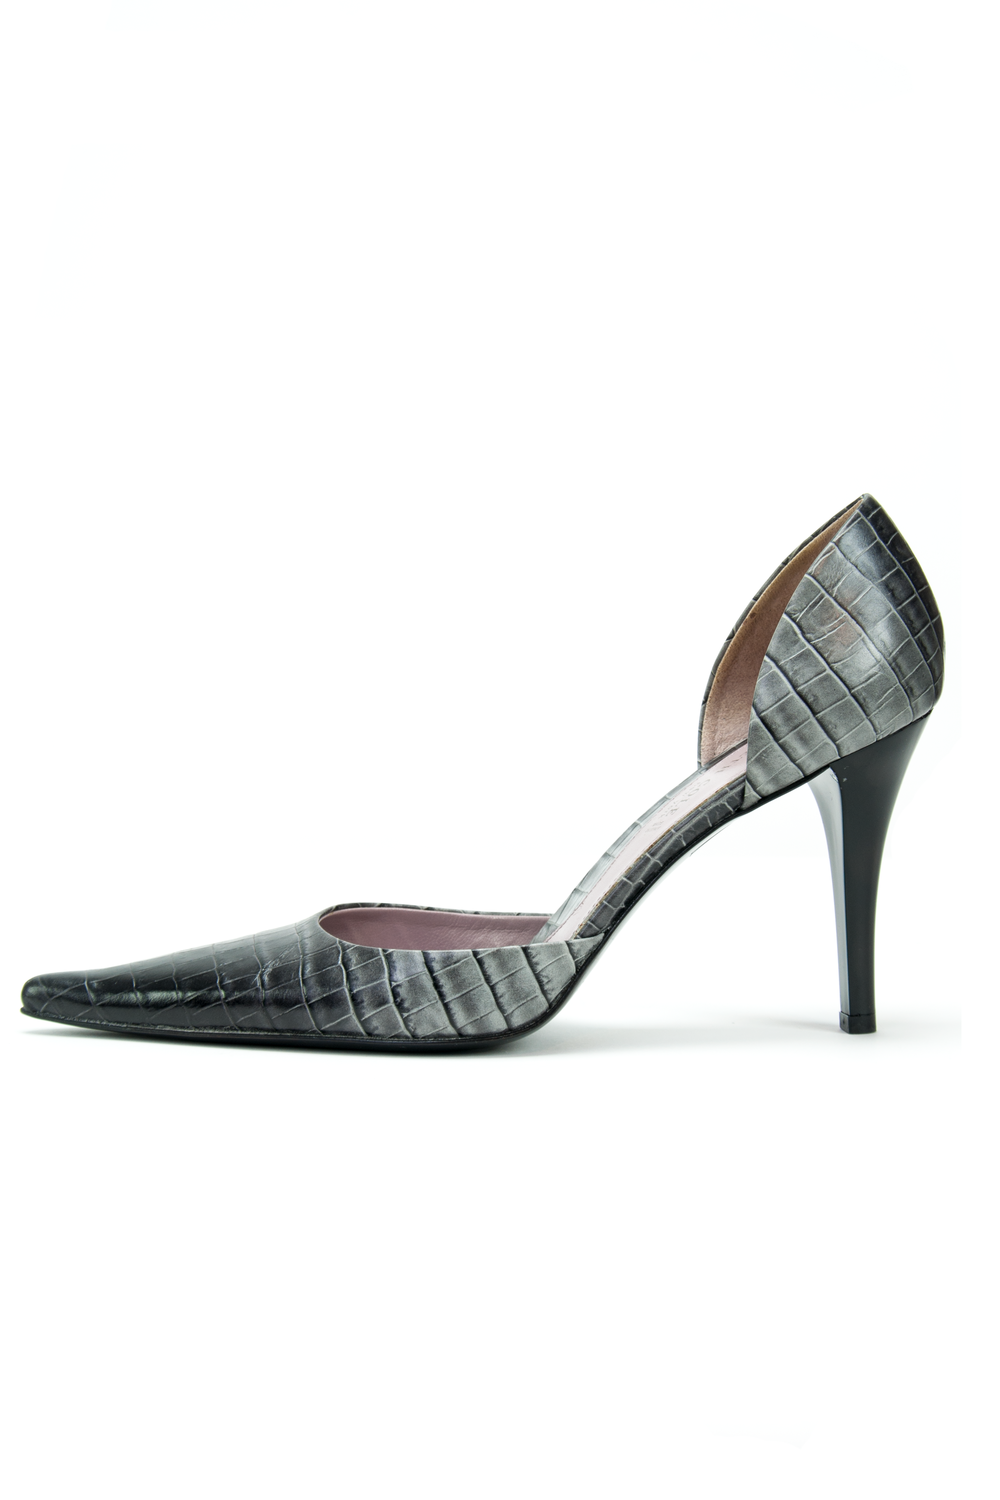 kenneth cole pumps with croc embossed leather